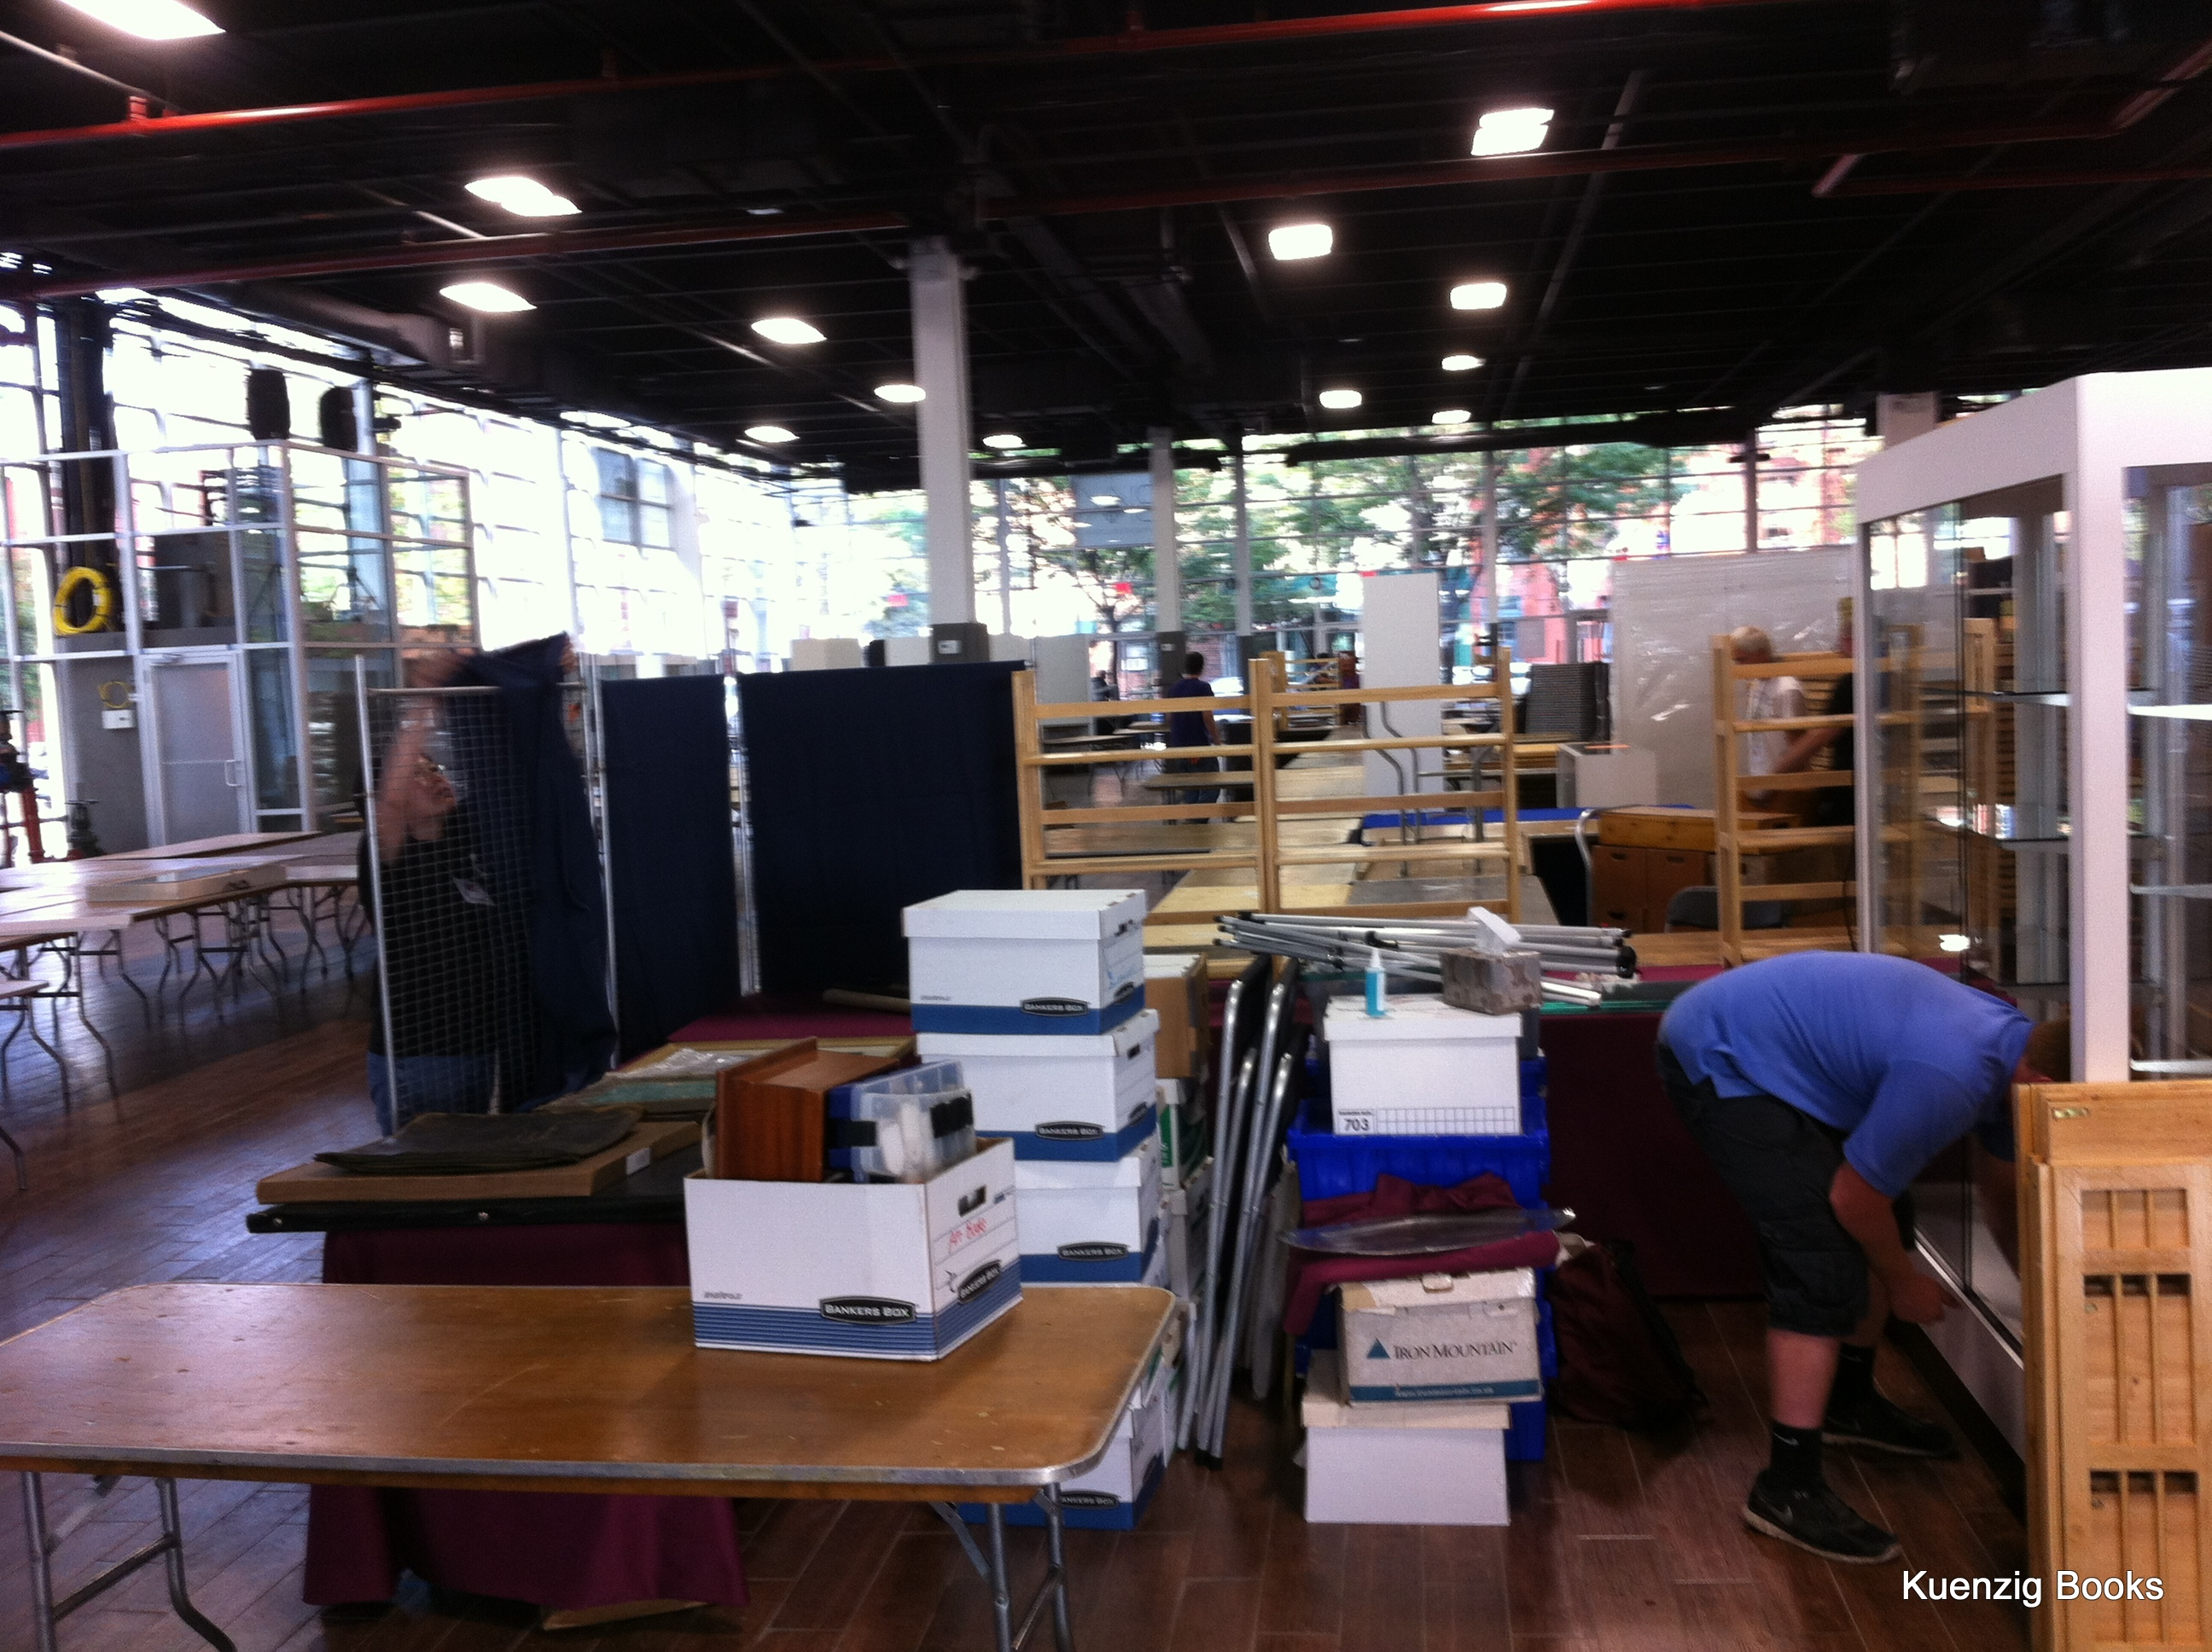 Kuenzig Books booth setup.